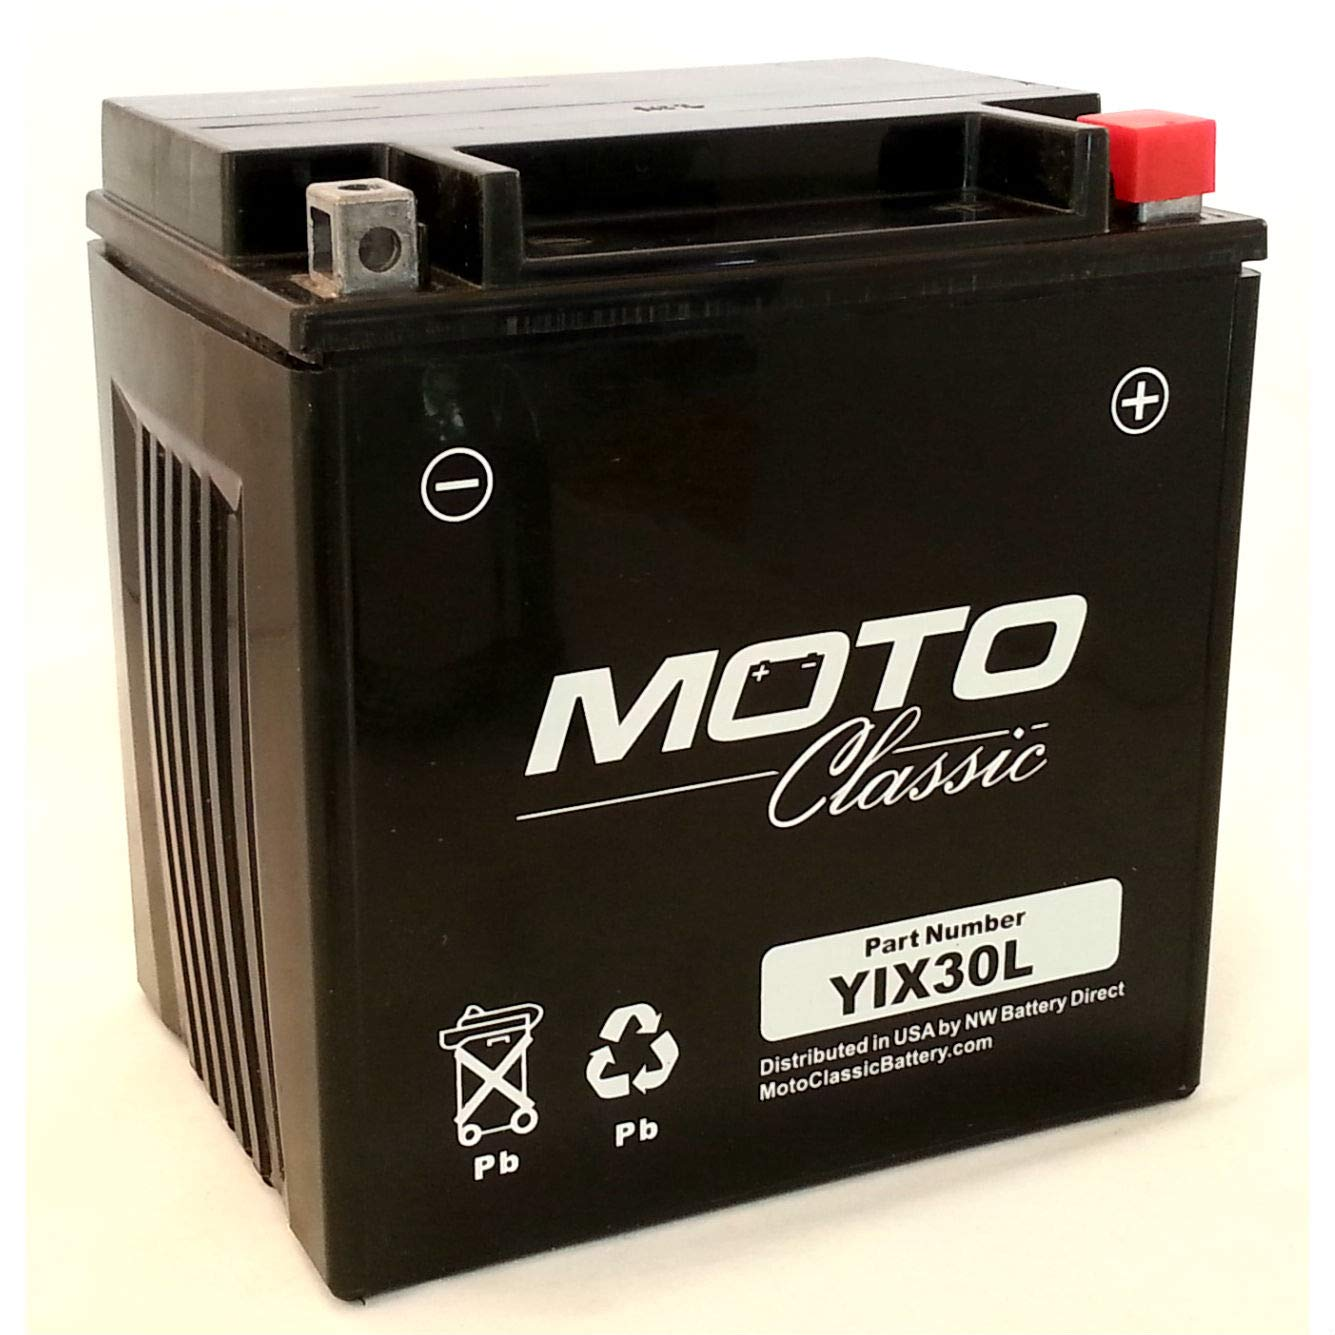 Moto Classic YIX30L 12V 34ah Sealed AGM 420CCA 30 Mo. Warranty ATV/Motorcycle Battery by Moto Classic (Image #2)